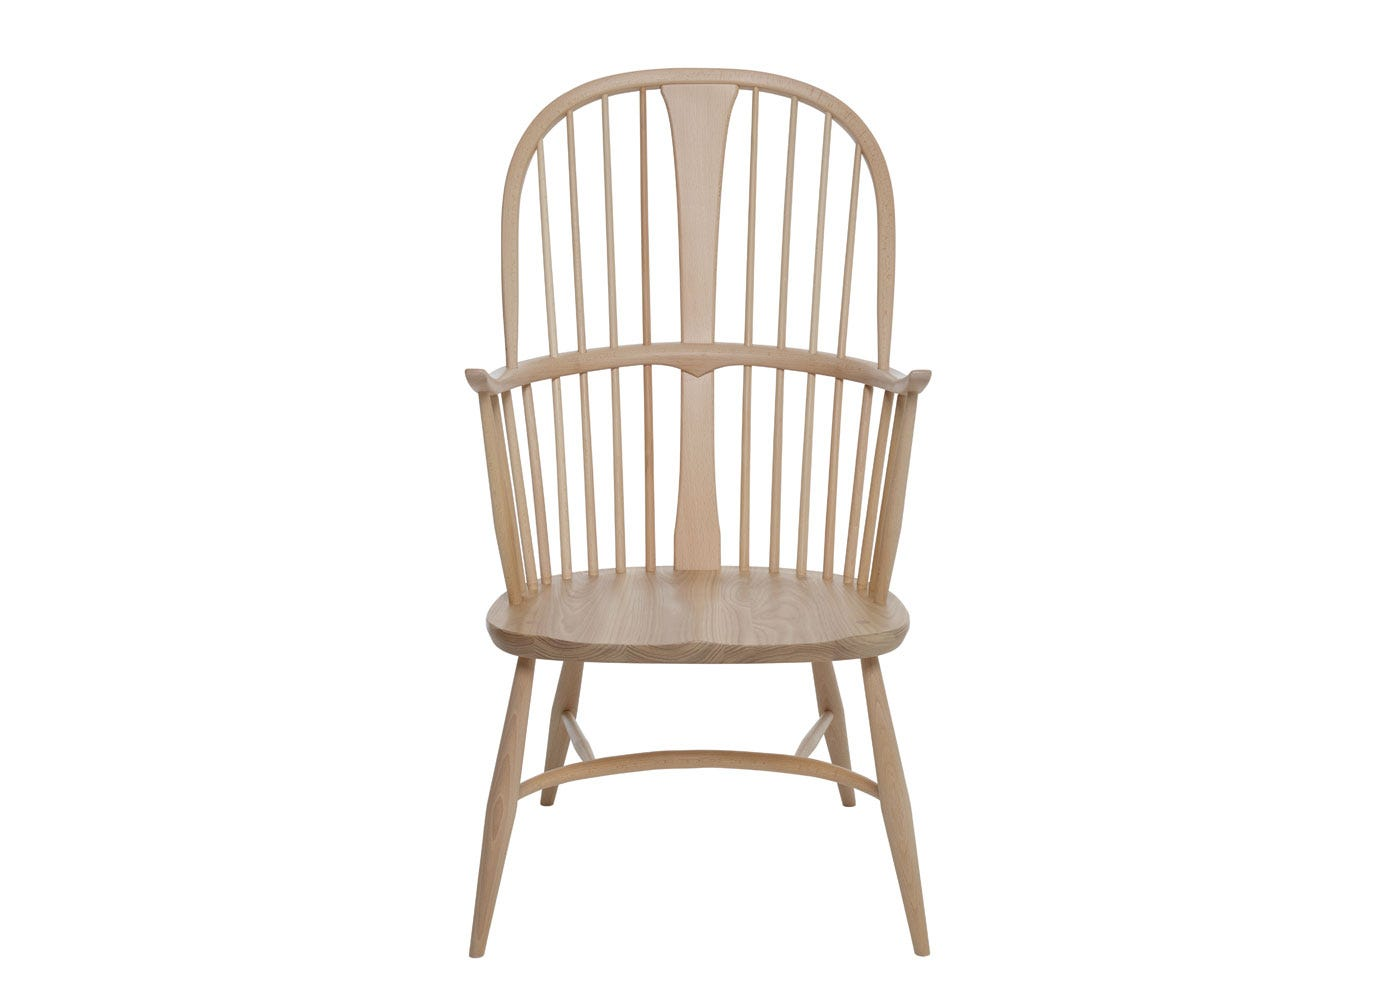 As shown: Originals Chairmakers Chair Beech and Elm - Front Profile